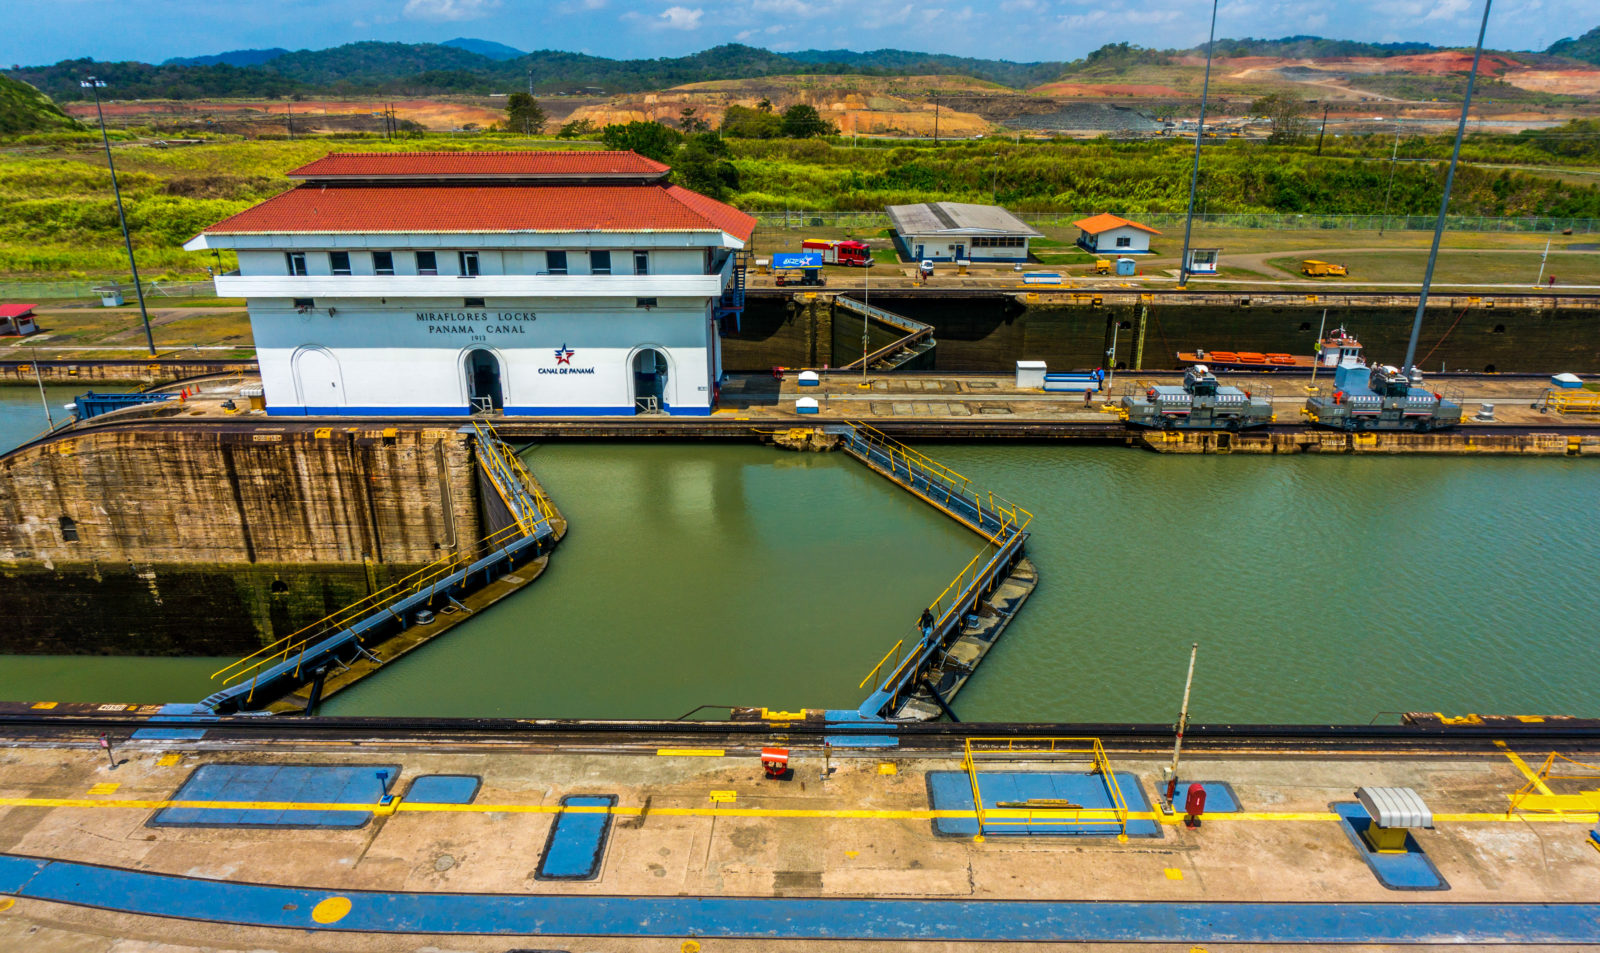 Plans Underway To Improve Canal Tourism Facilities